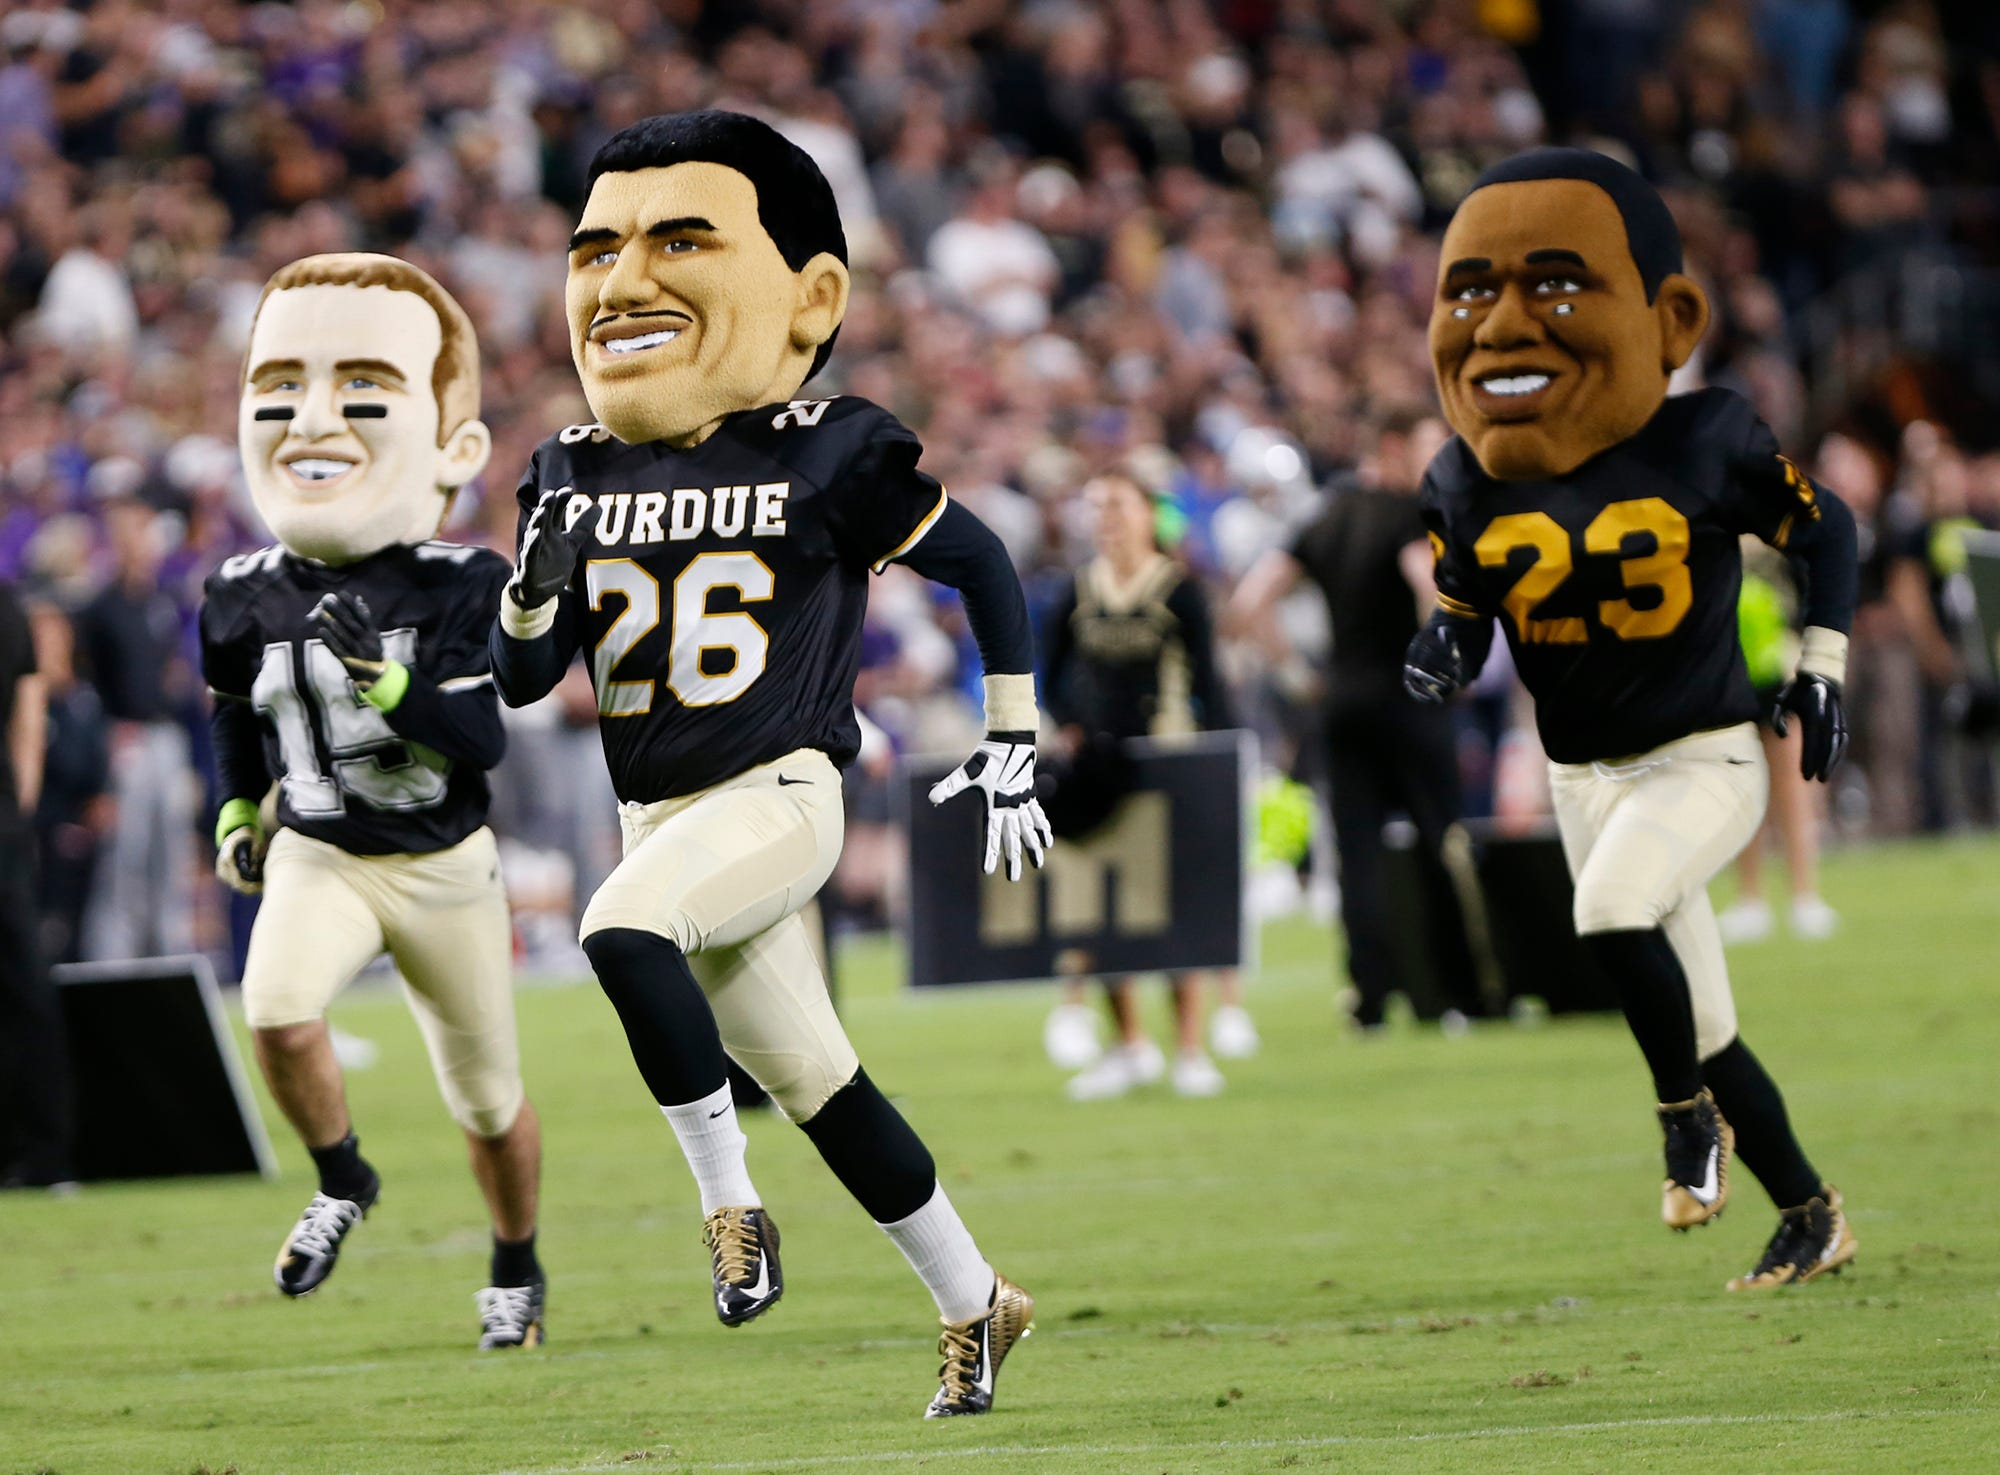 Big heads of former Purdue greats Drew Brees, from left, Rod Woodson and Leroy Keyes sprint the lenght of the field during a timeout of the Boilermakers game with Northwestern Thursday, August 30, 2018, in West Lafayette. Northwestern defeated Purdue 31-27.